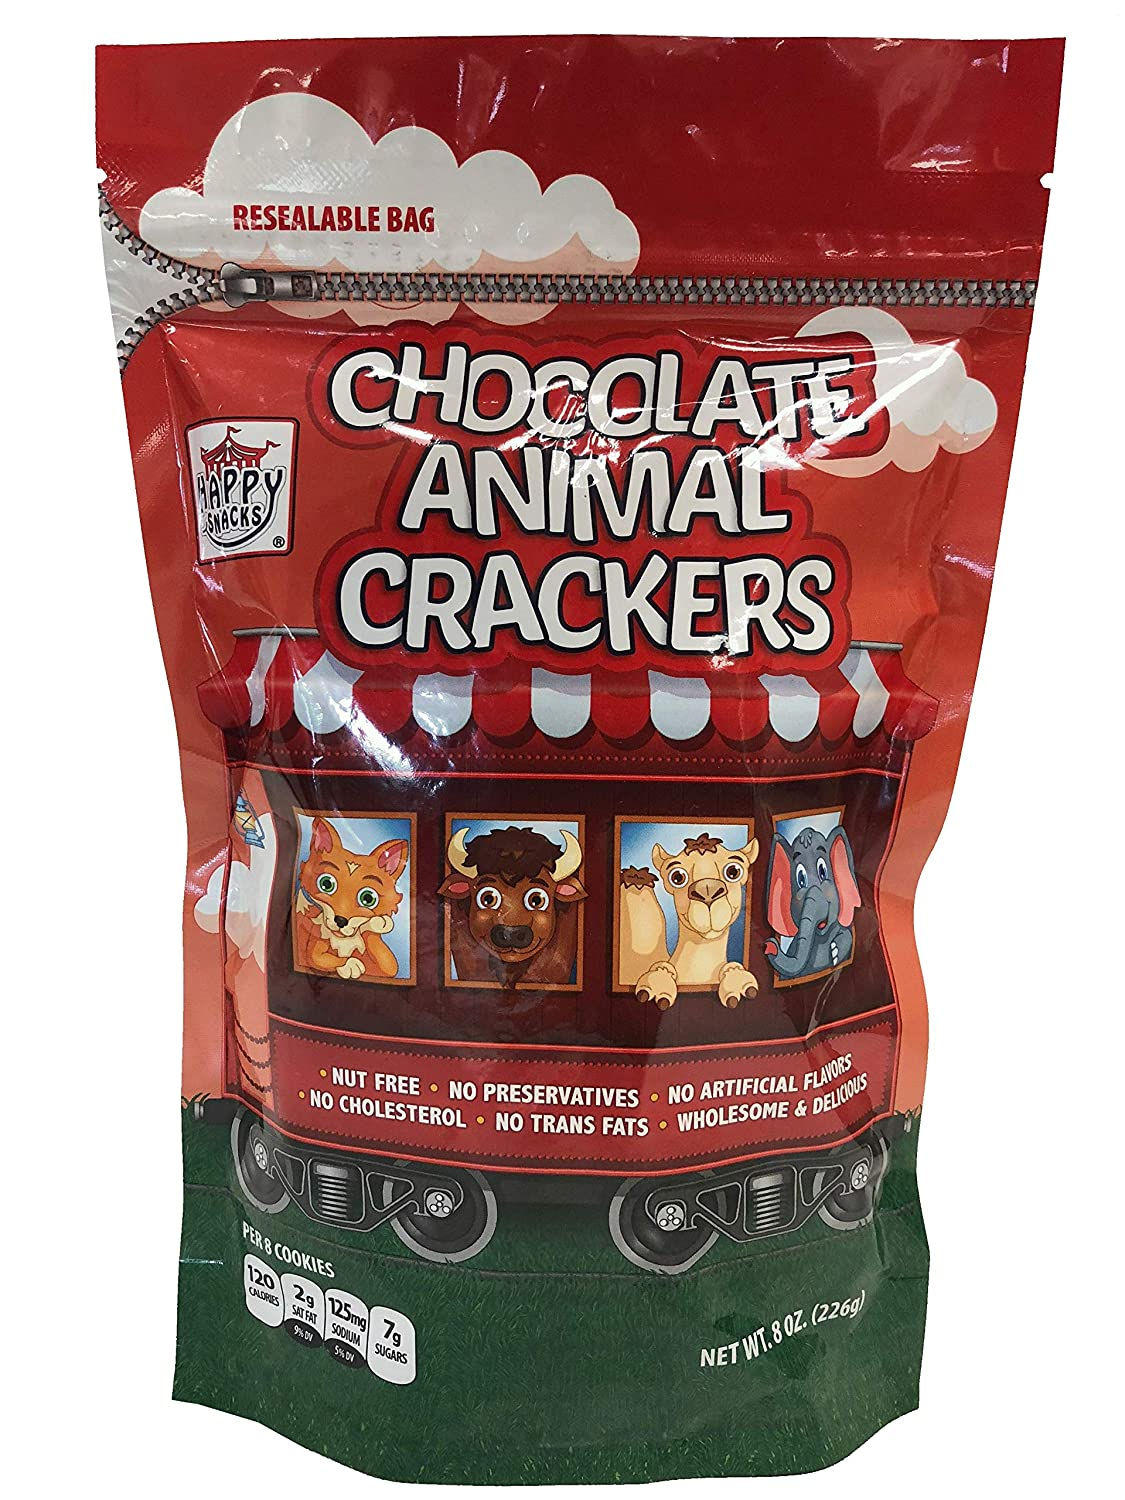 Happy Snacks Animal Crackers,Chocolate, 8 Ounce Resealable Bag (Pack of 6)